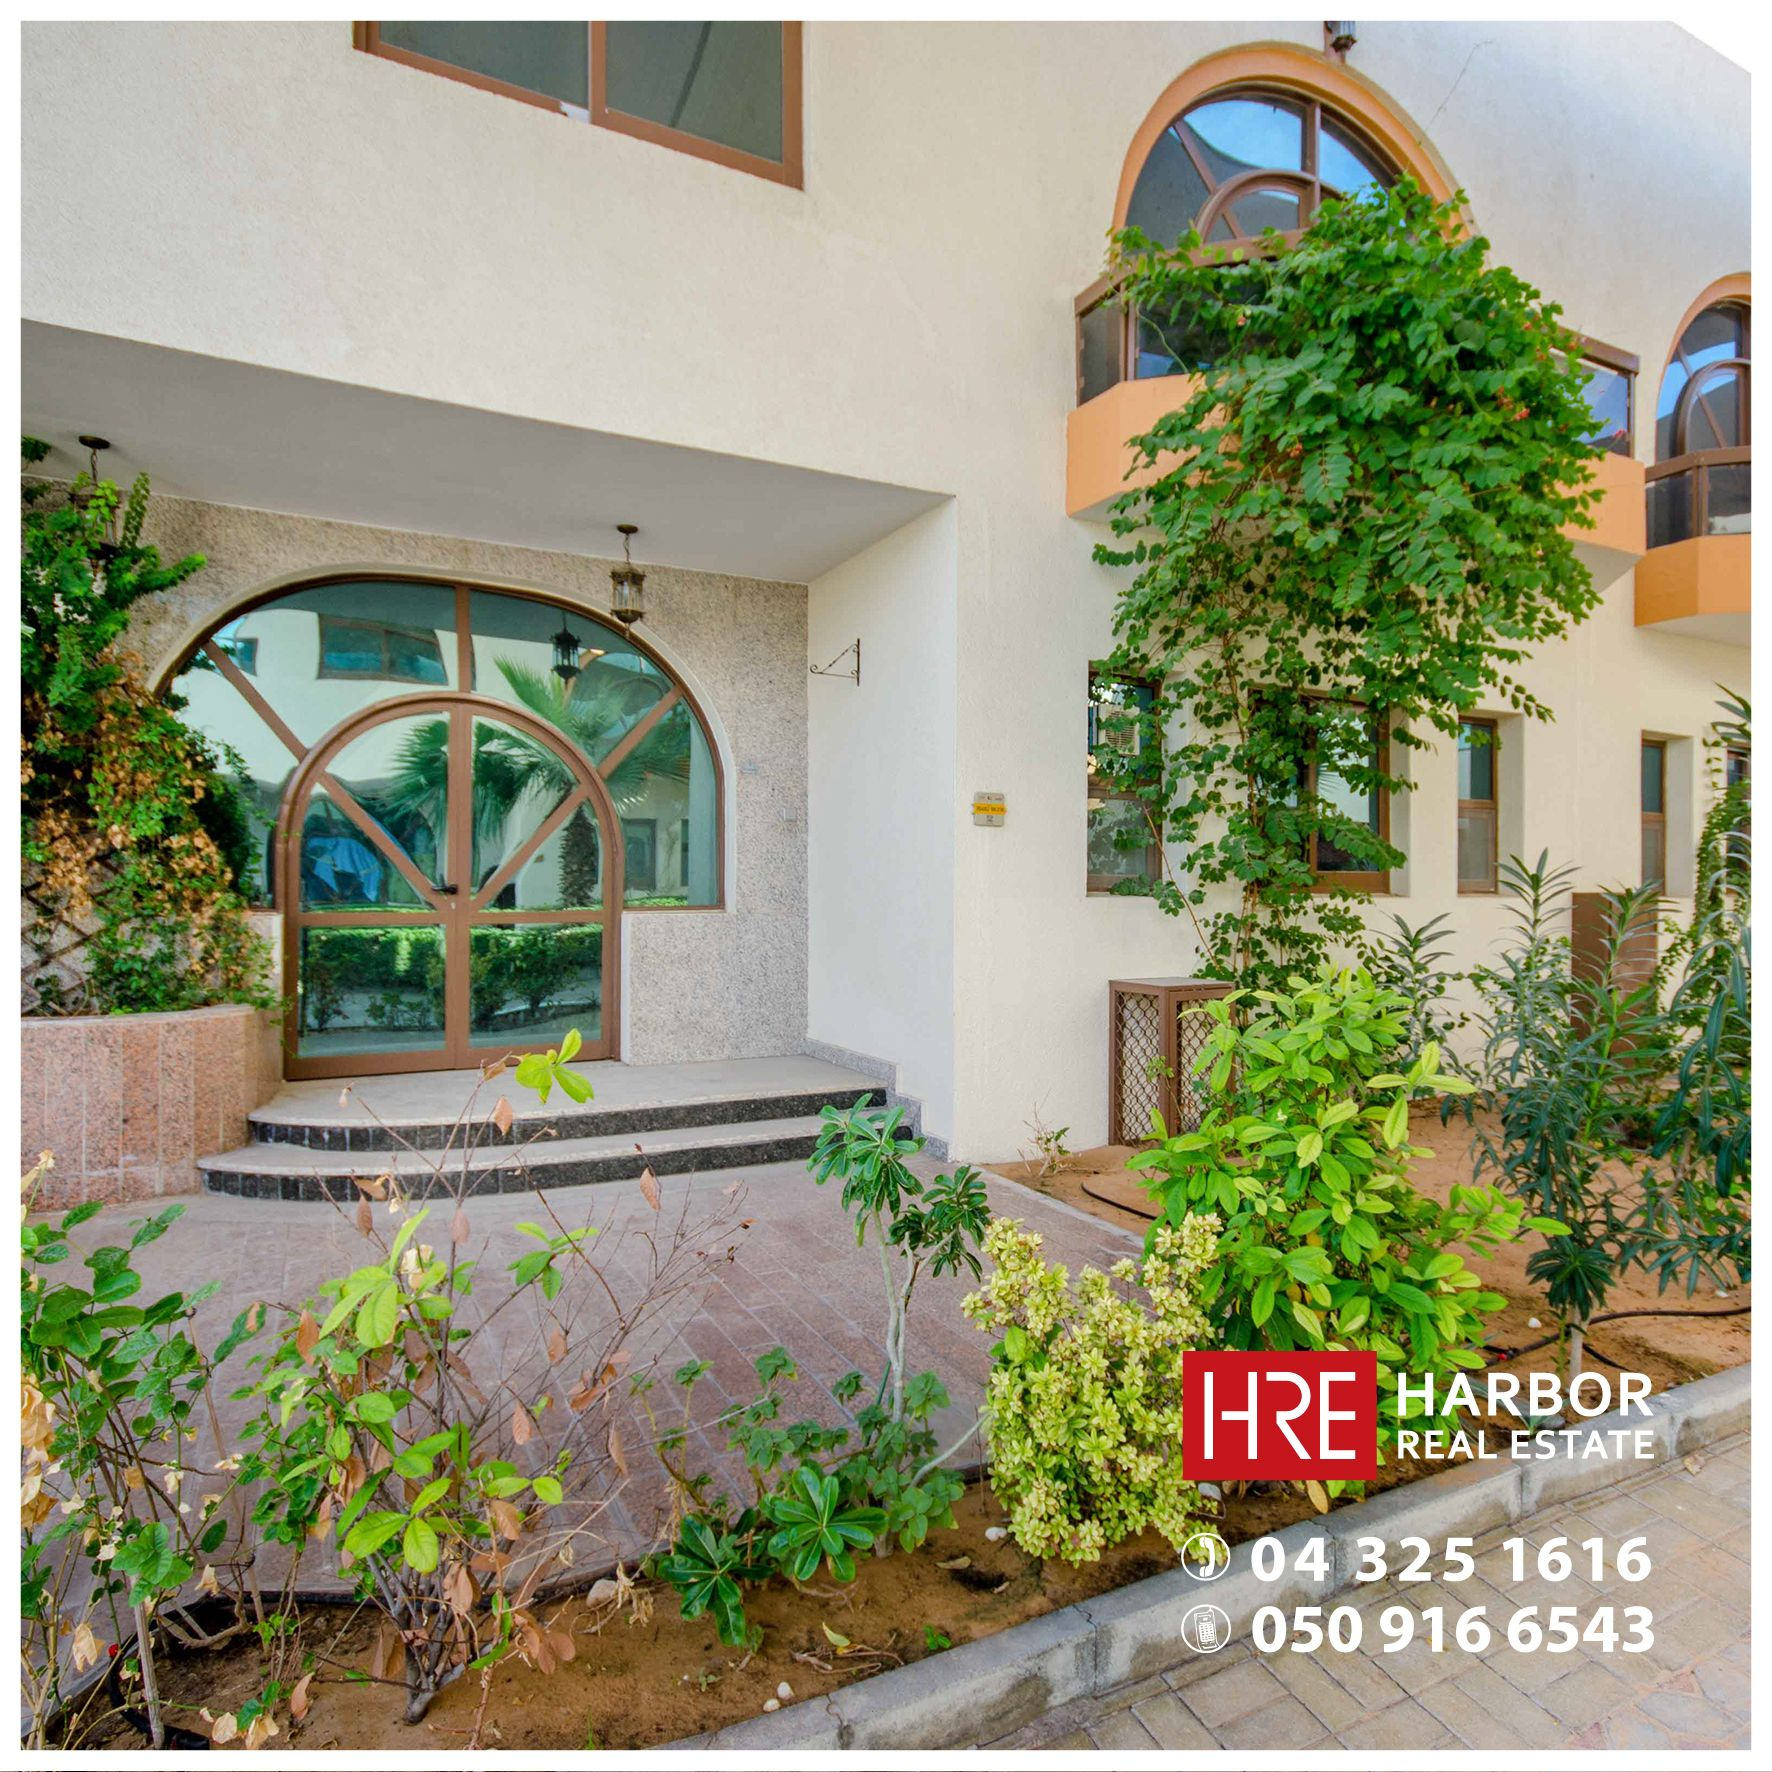 Pin On Property For Sale In Dubai